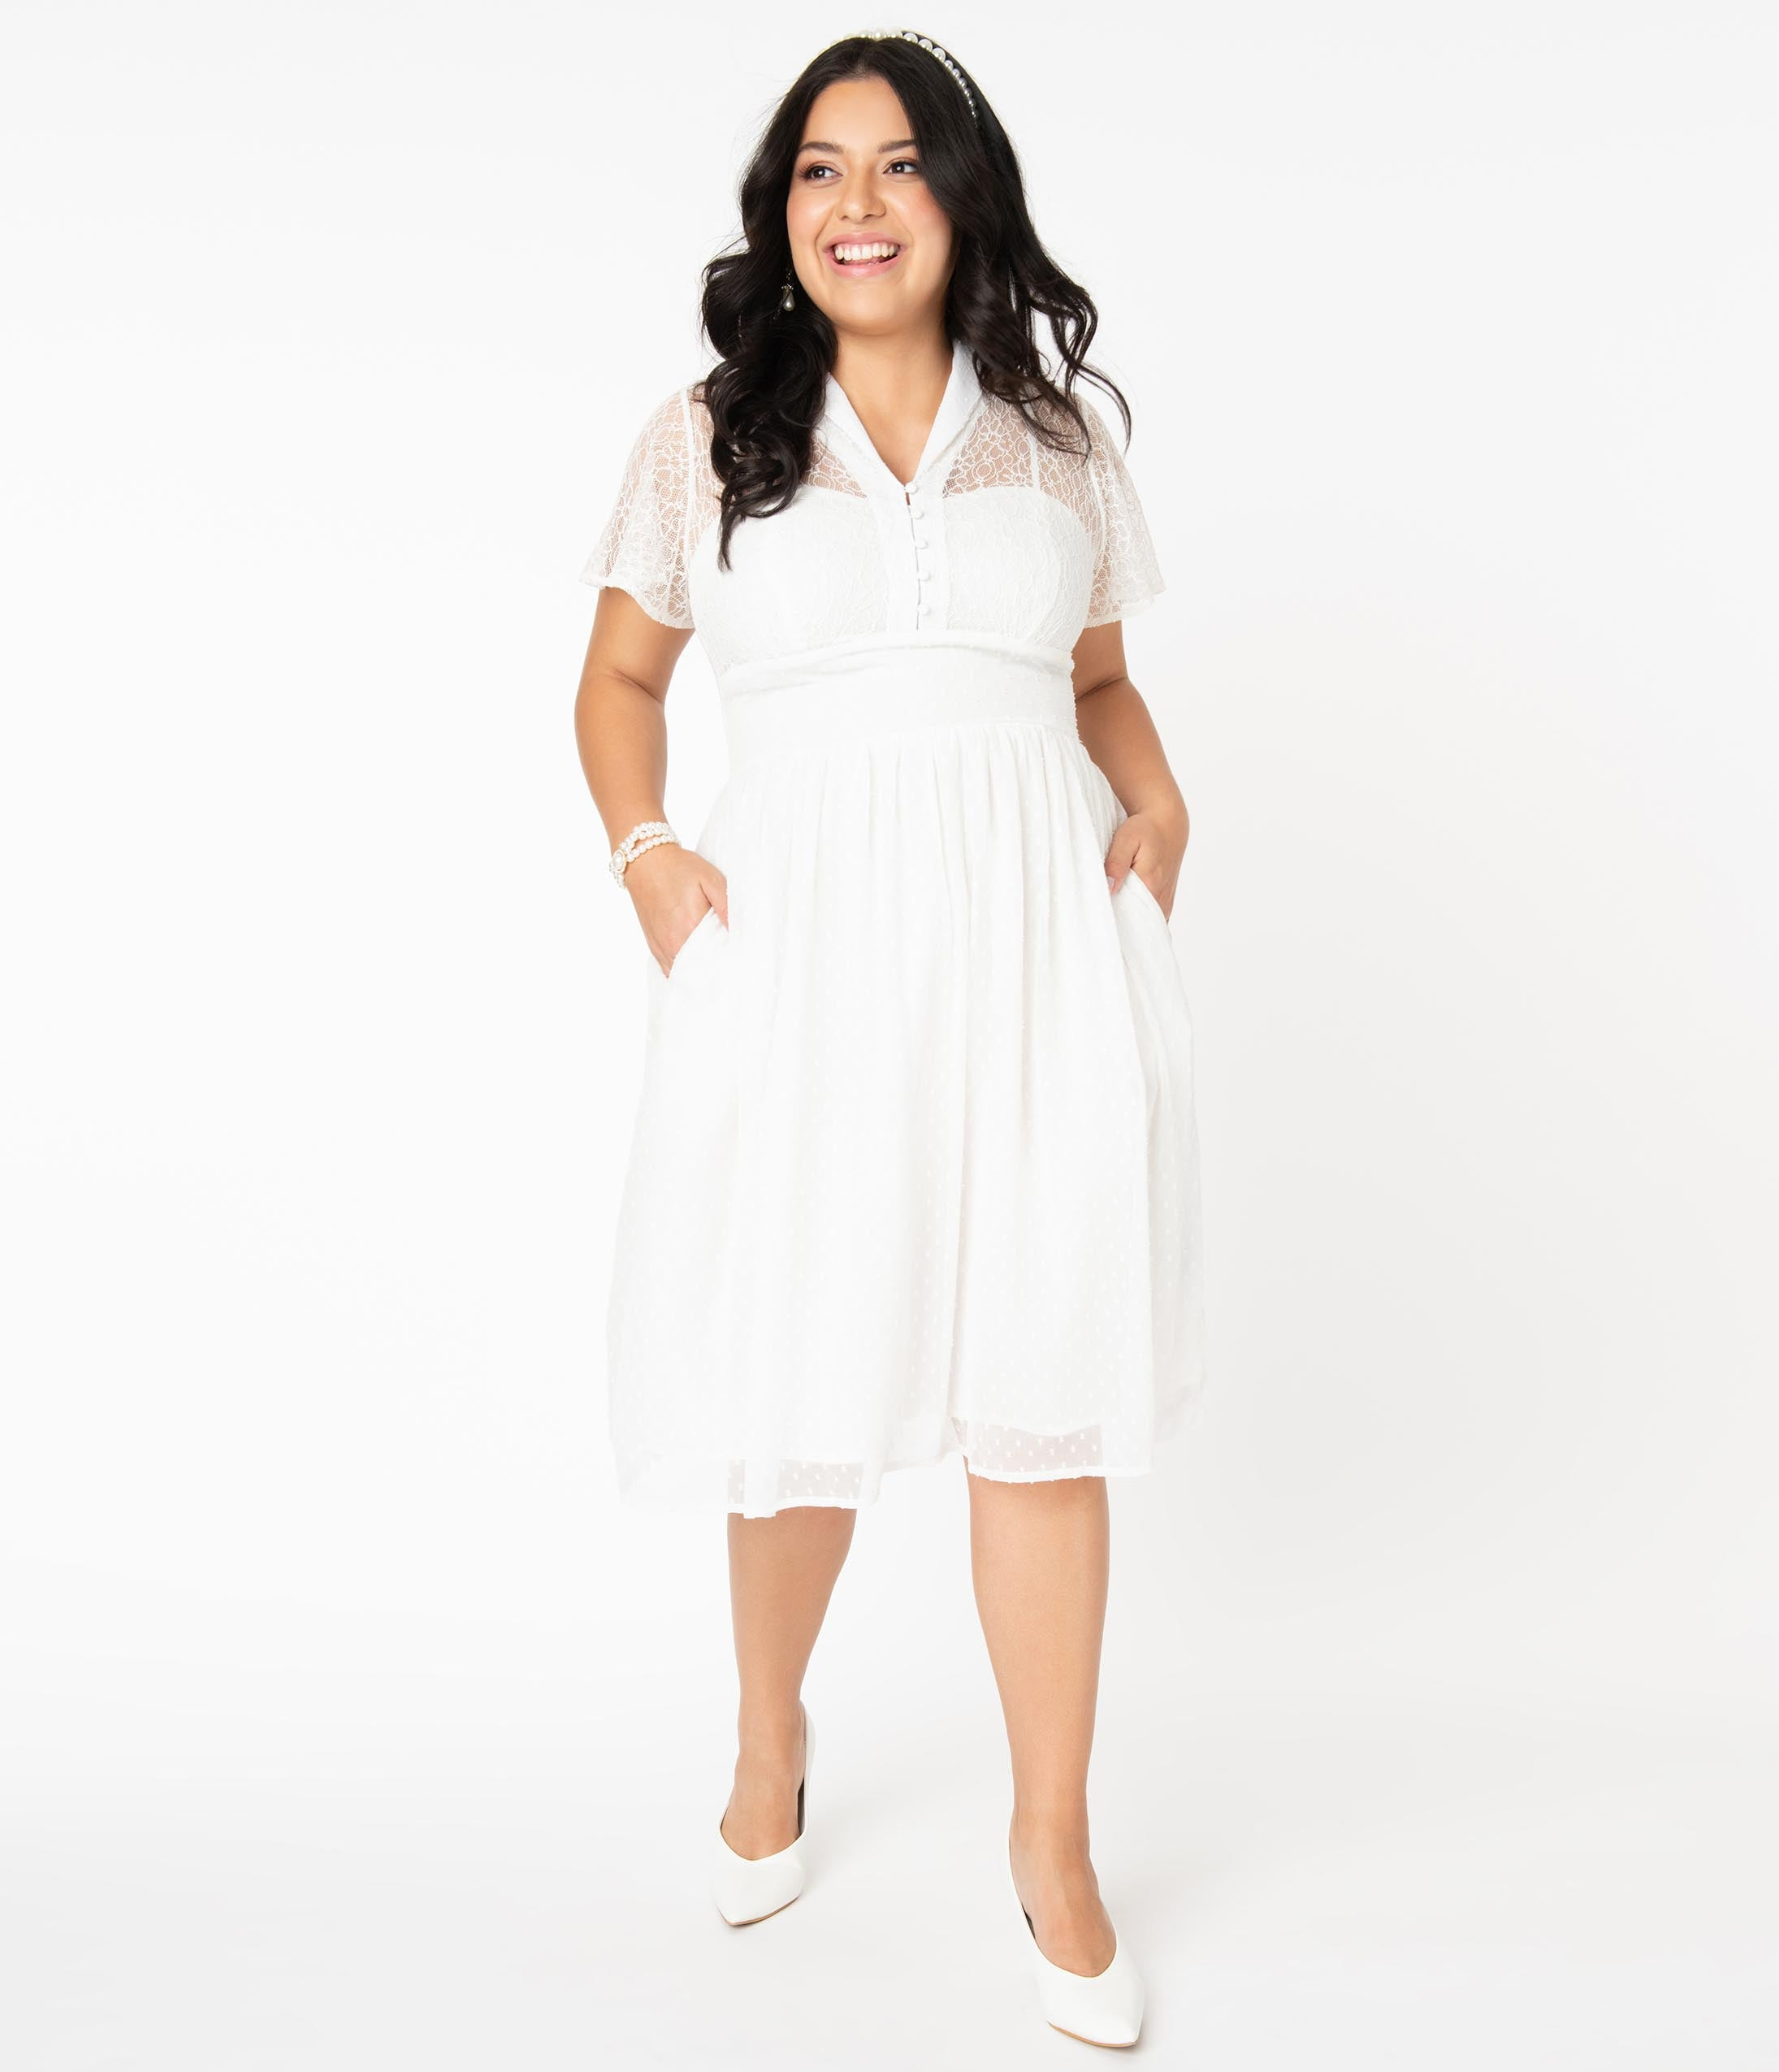 Swing Dance Clothing You Can Dance In Plus Size Vintage Style White Lace  Flocked Naomi Swing Dress $92.00 AT vintagedancer.com